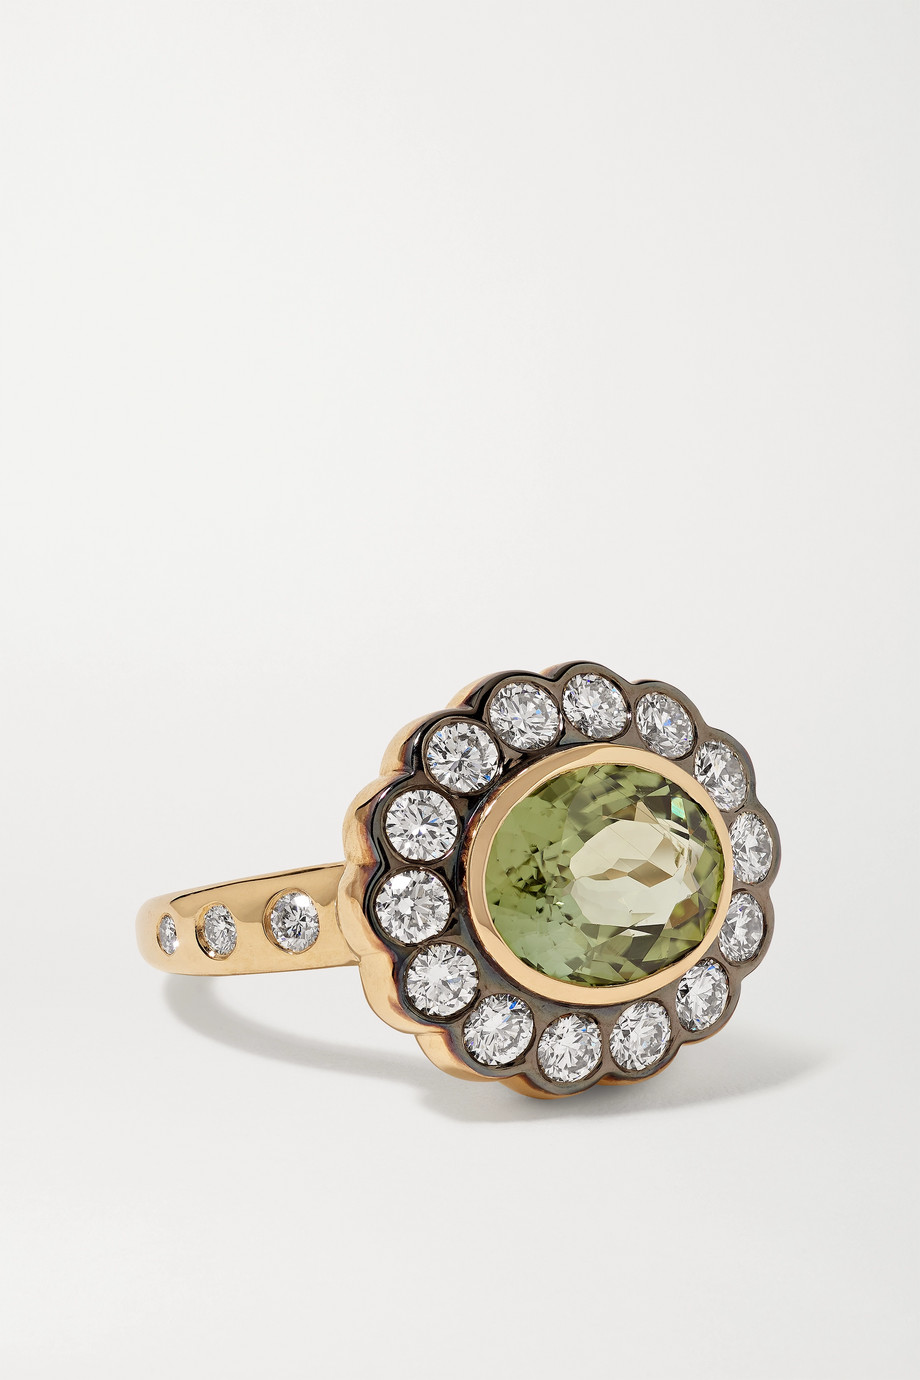 MARLO LAZ Alexandra 14-karat gold, tourmaline and diamond ring